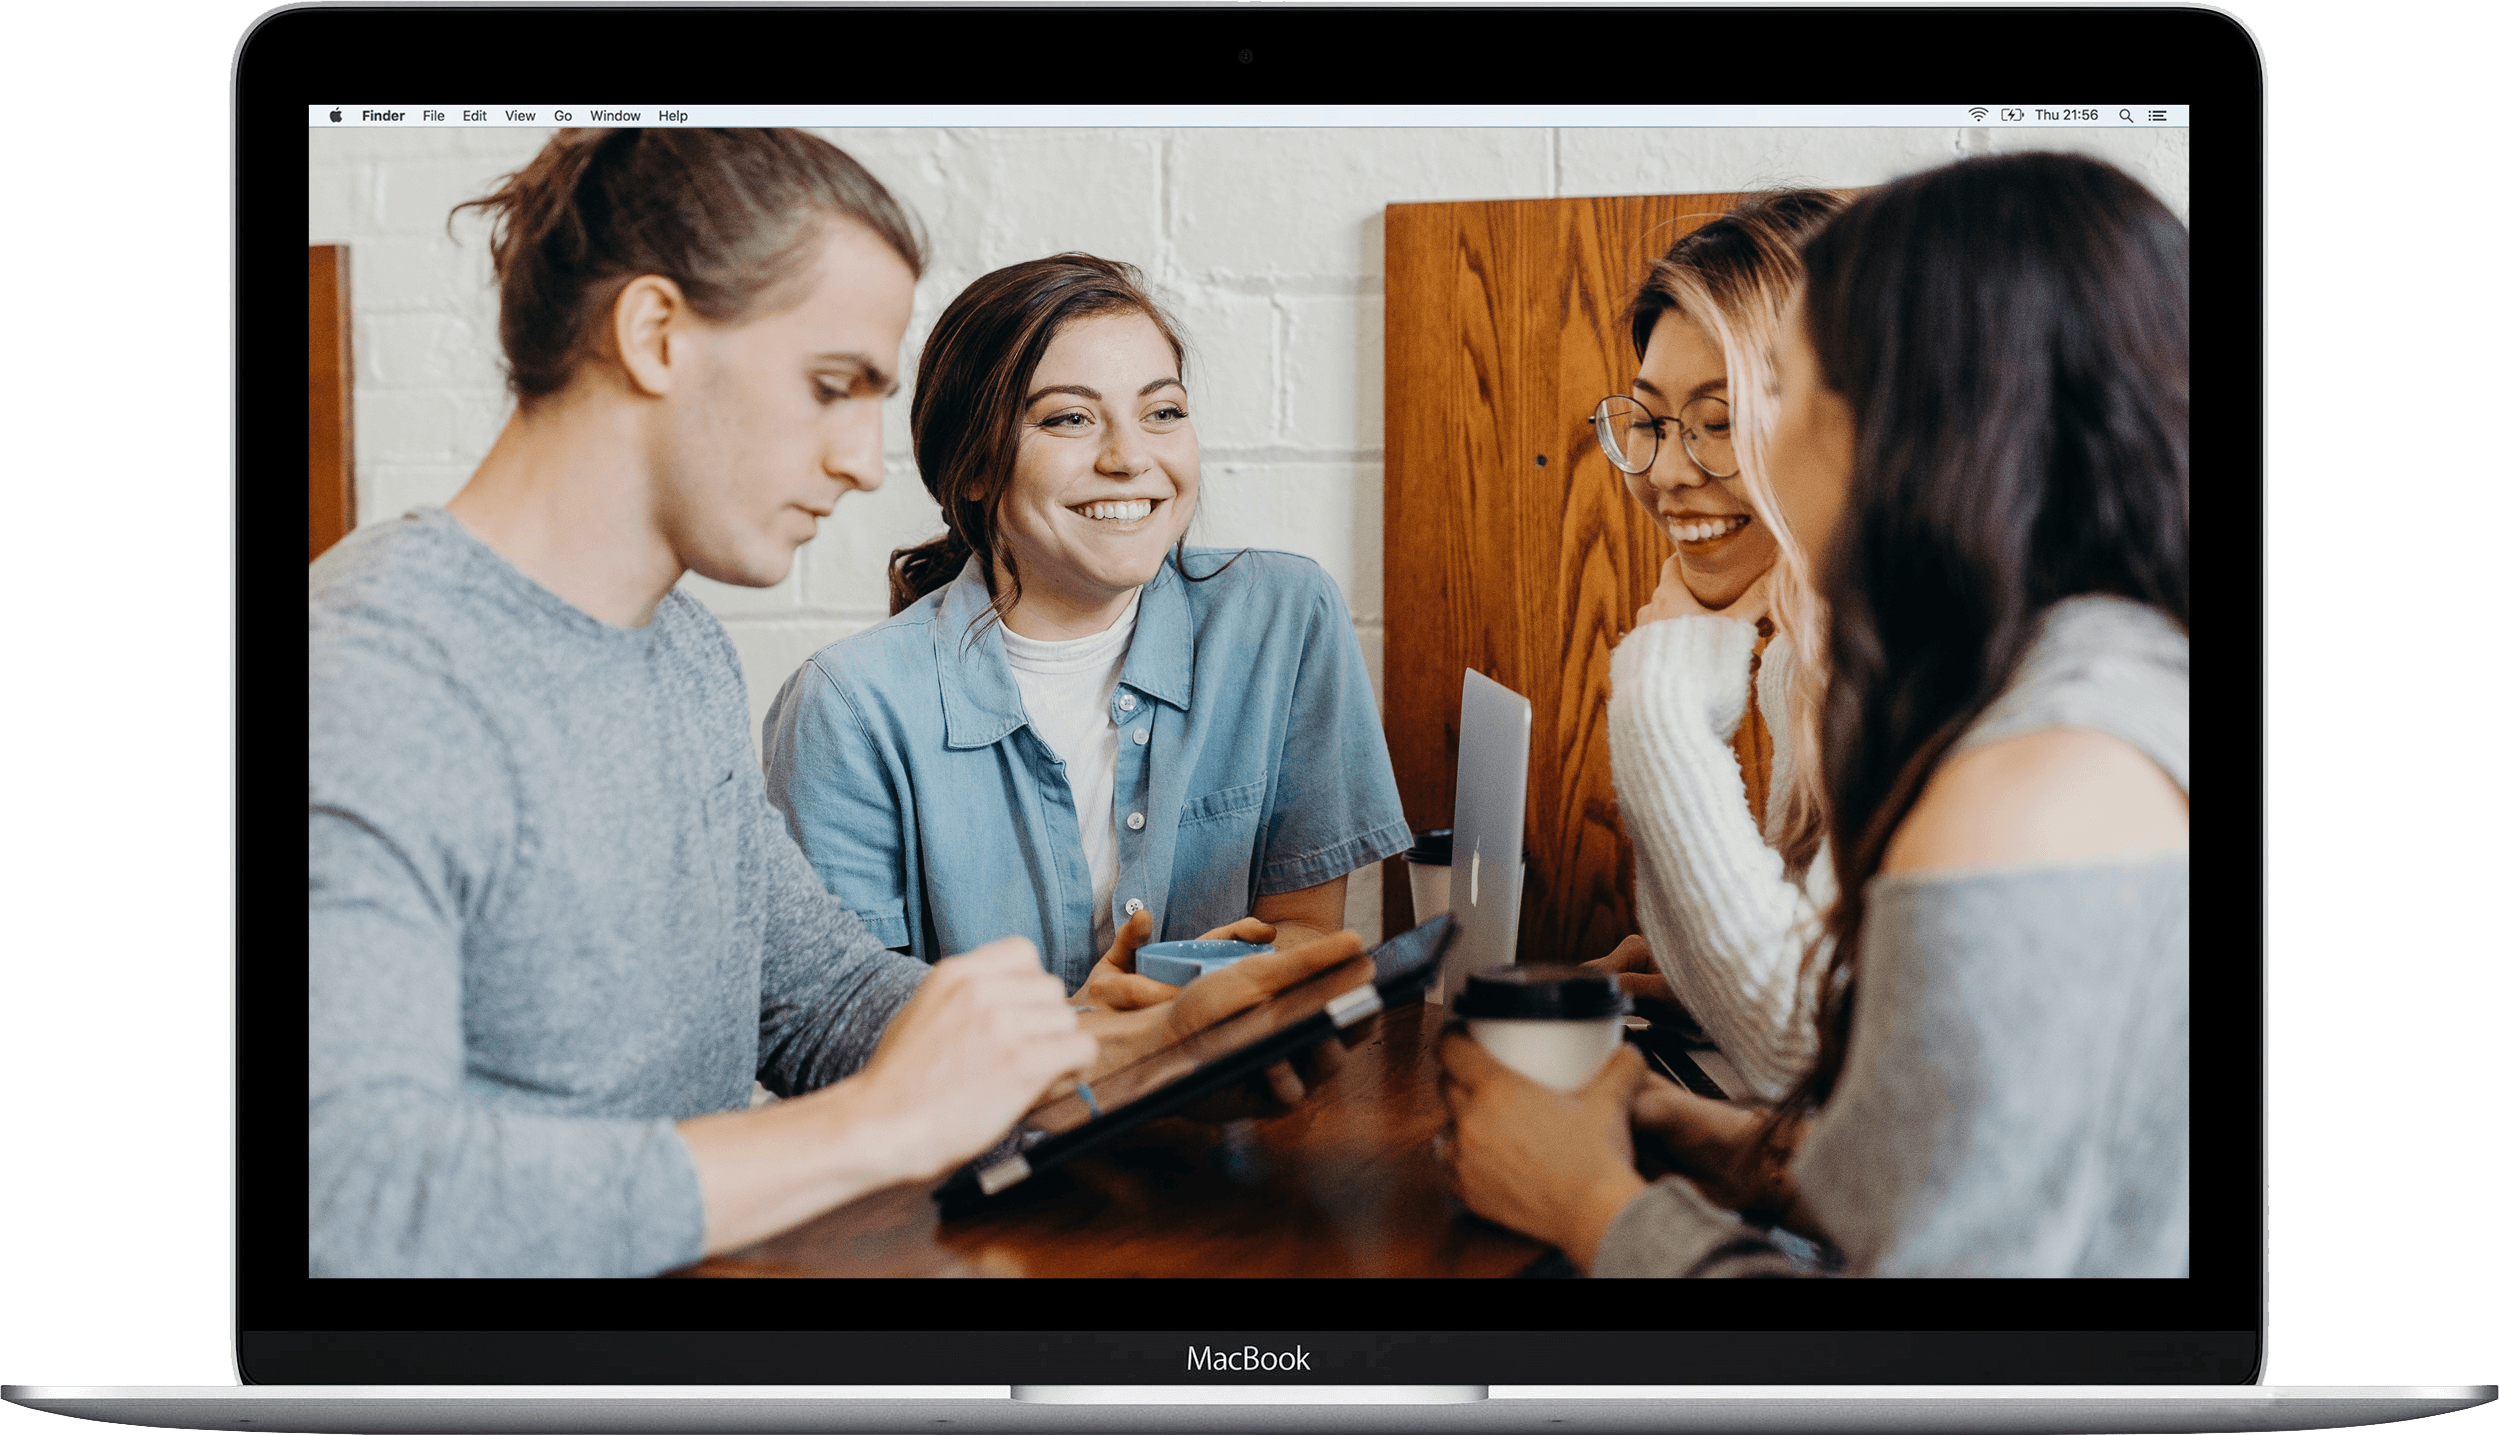 macbook pro with an image of people smiling on the screen